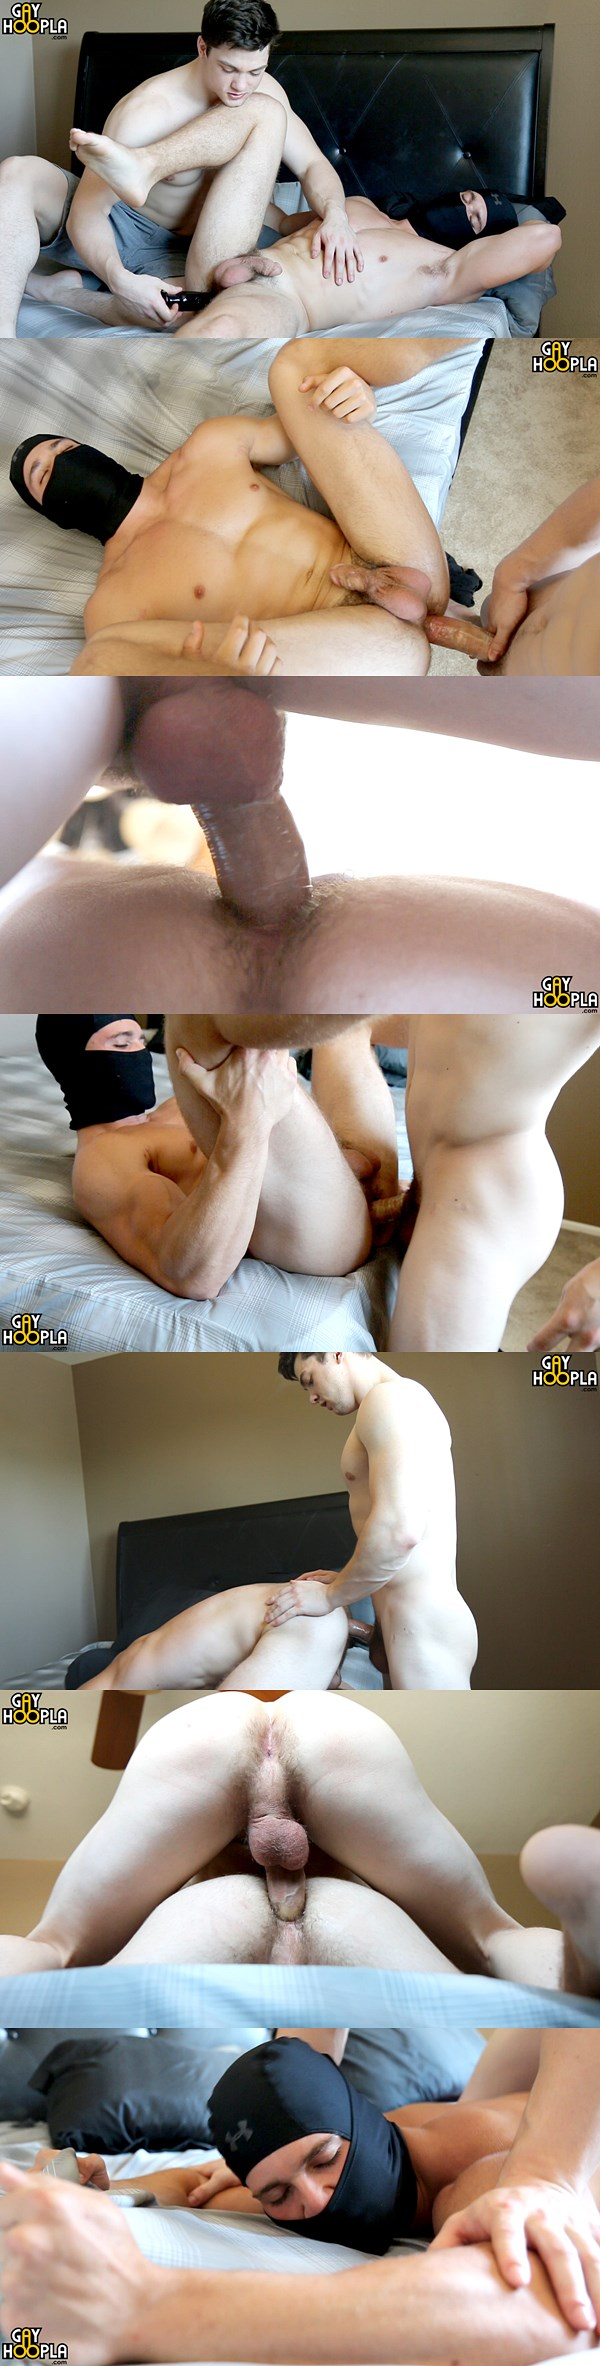 Collin Simpson fucks Kyle Dean's tight virgin ass at Gayhoopla